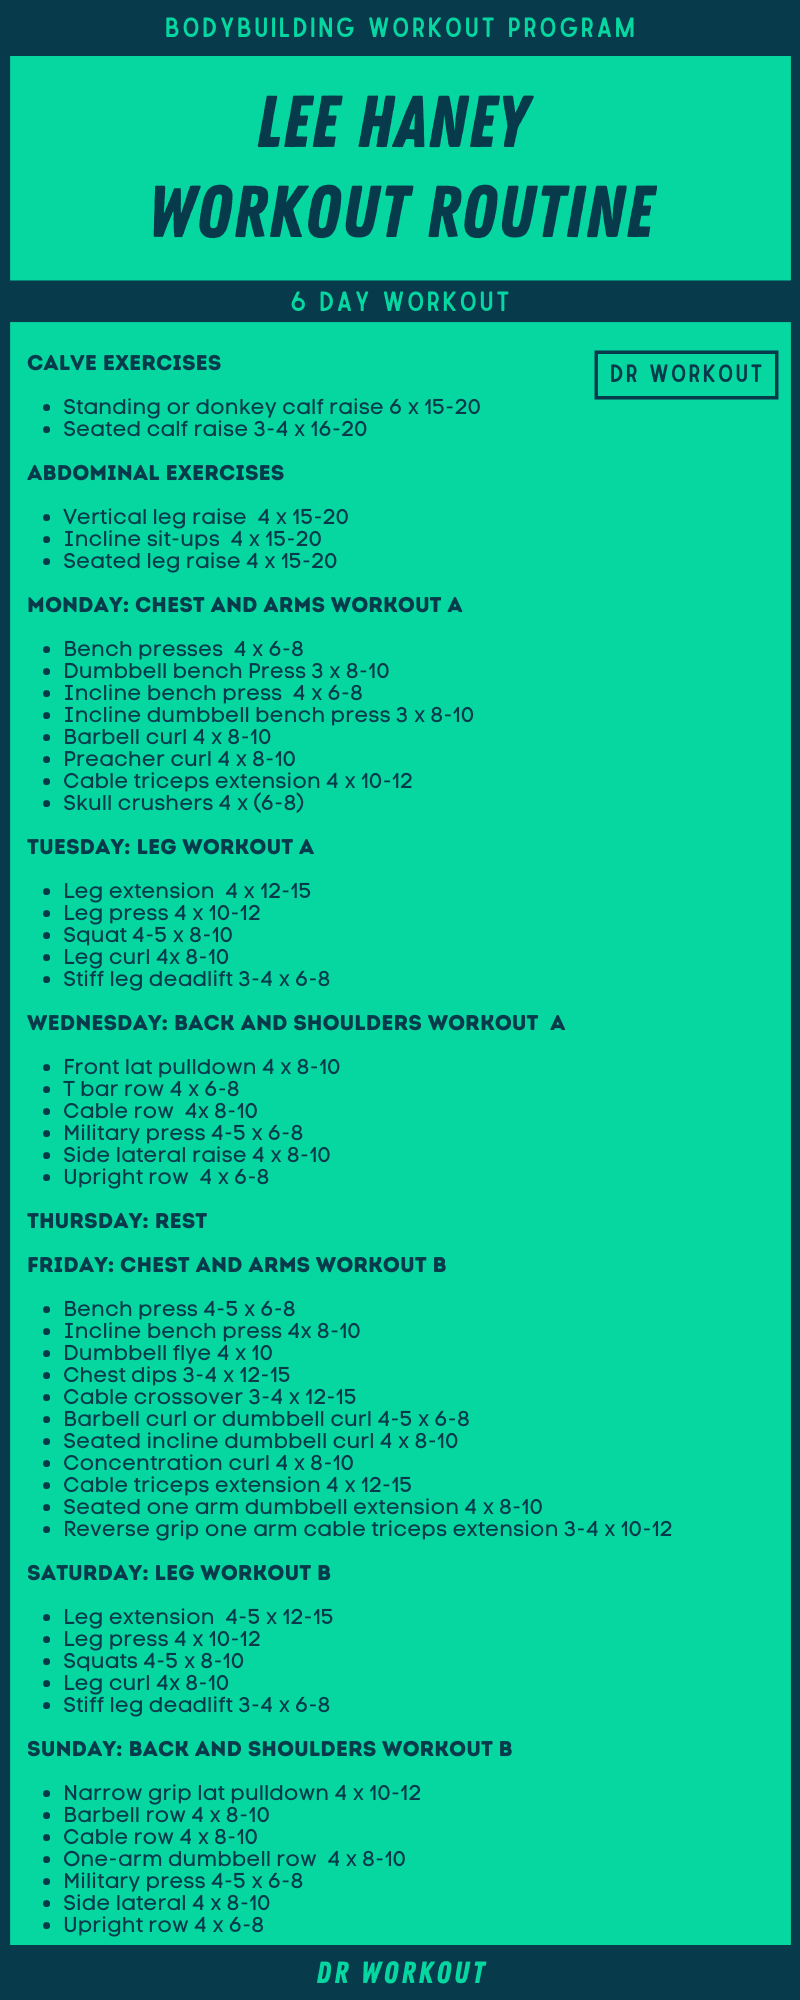 Lee Haney Workout Routine